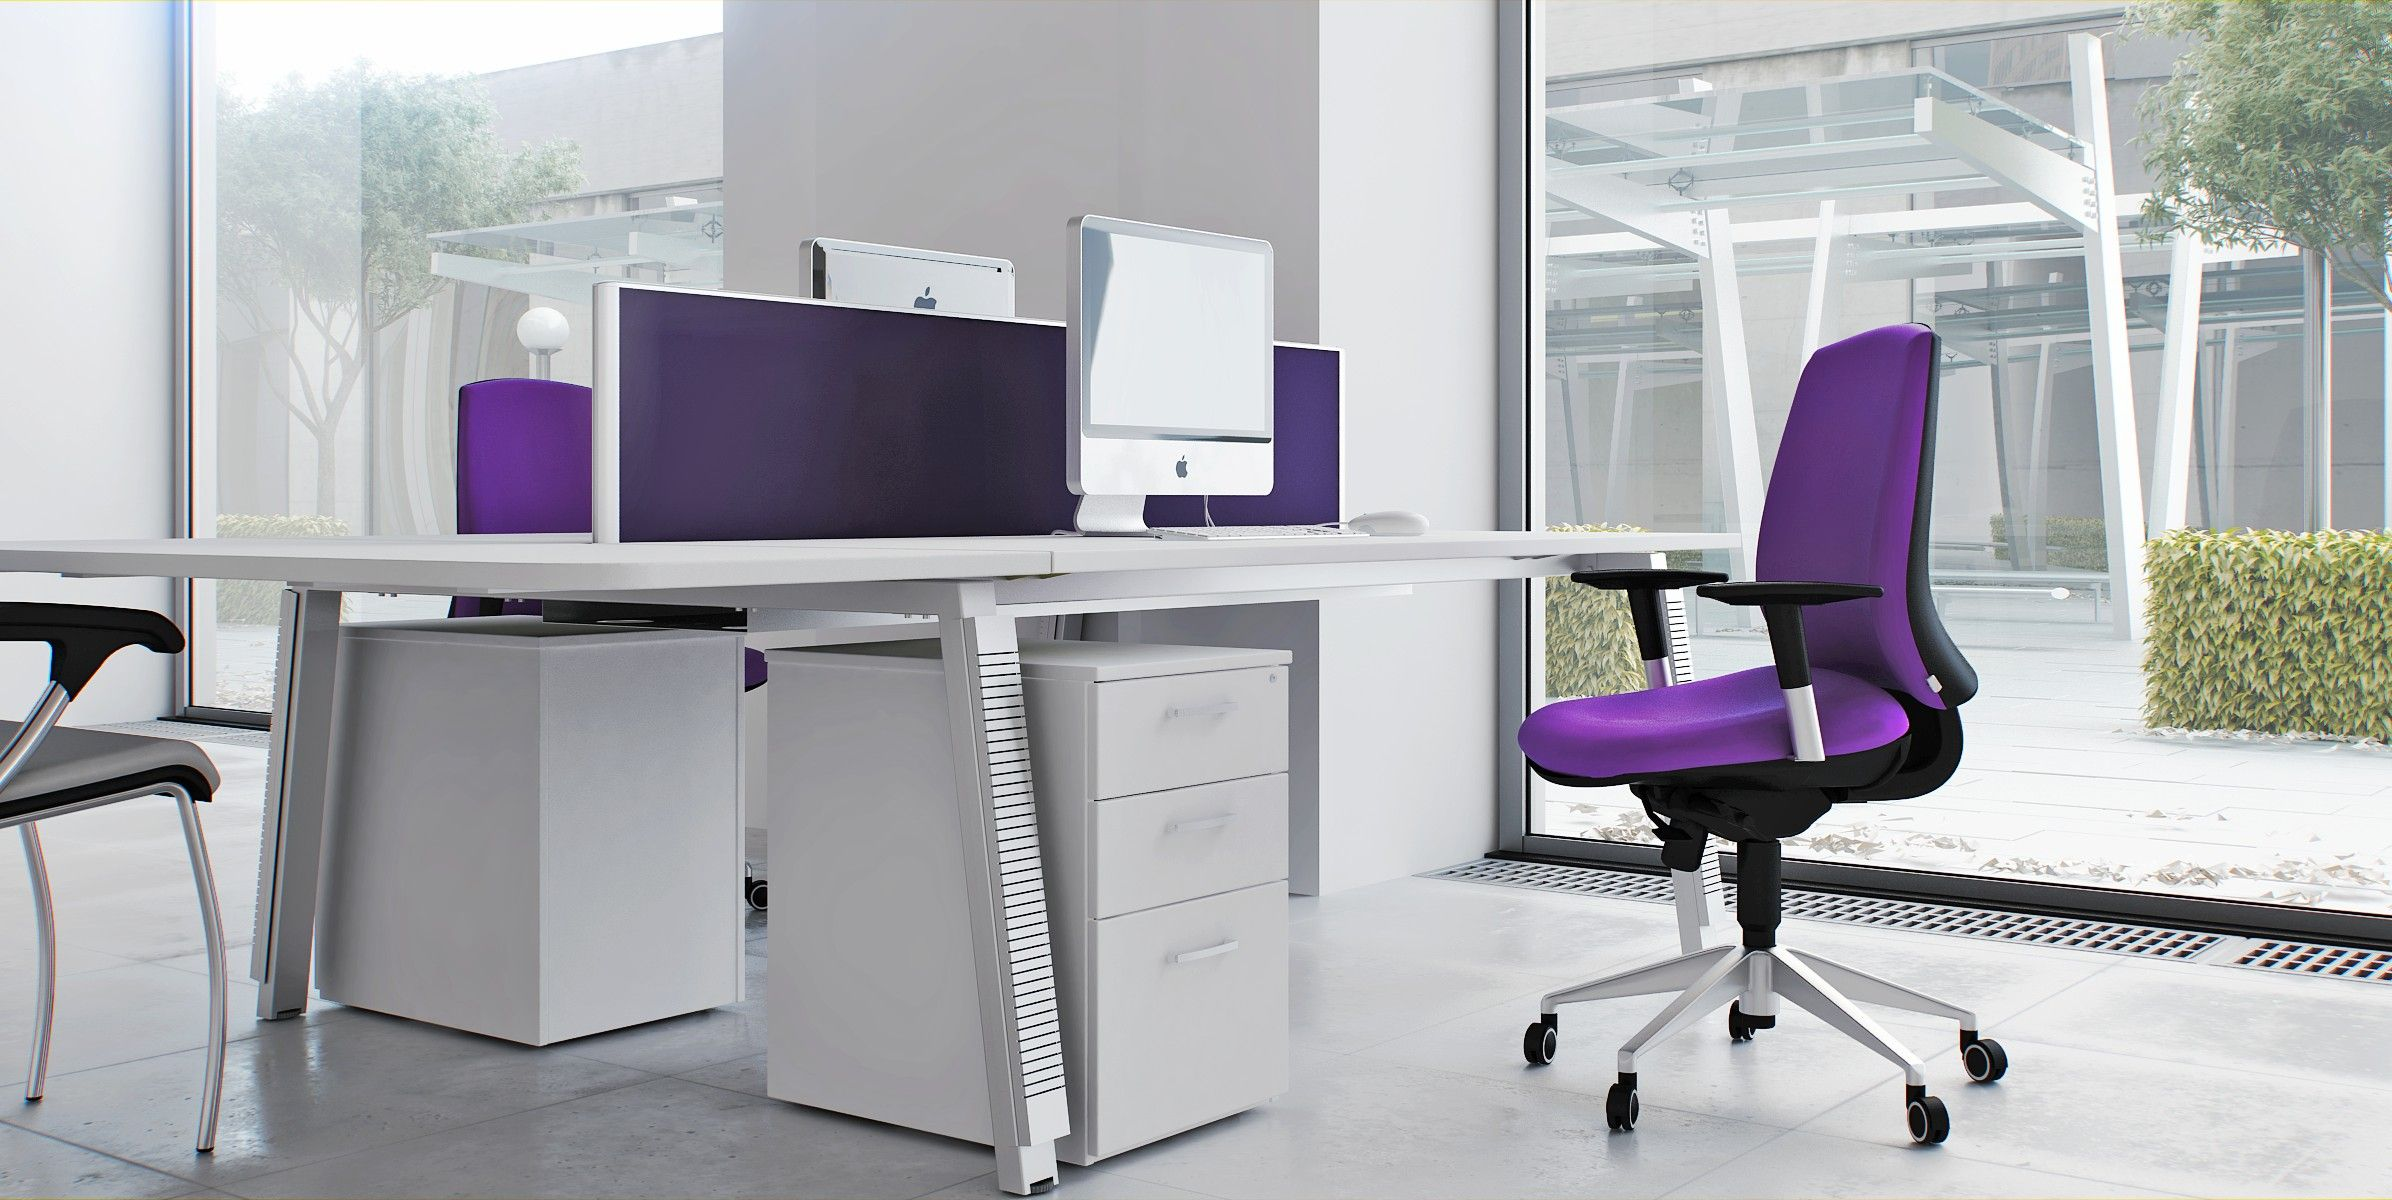 Captivating Modern Office Chair With Soft Purple Fabric Mixed With ...